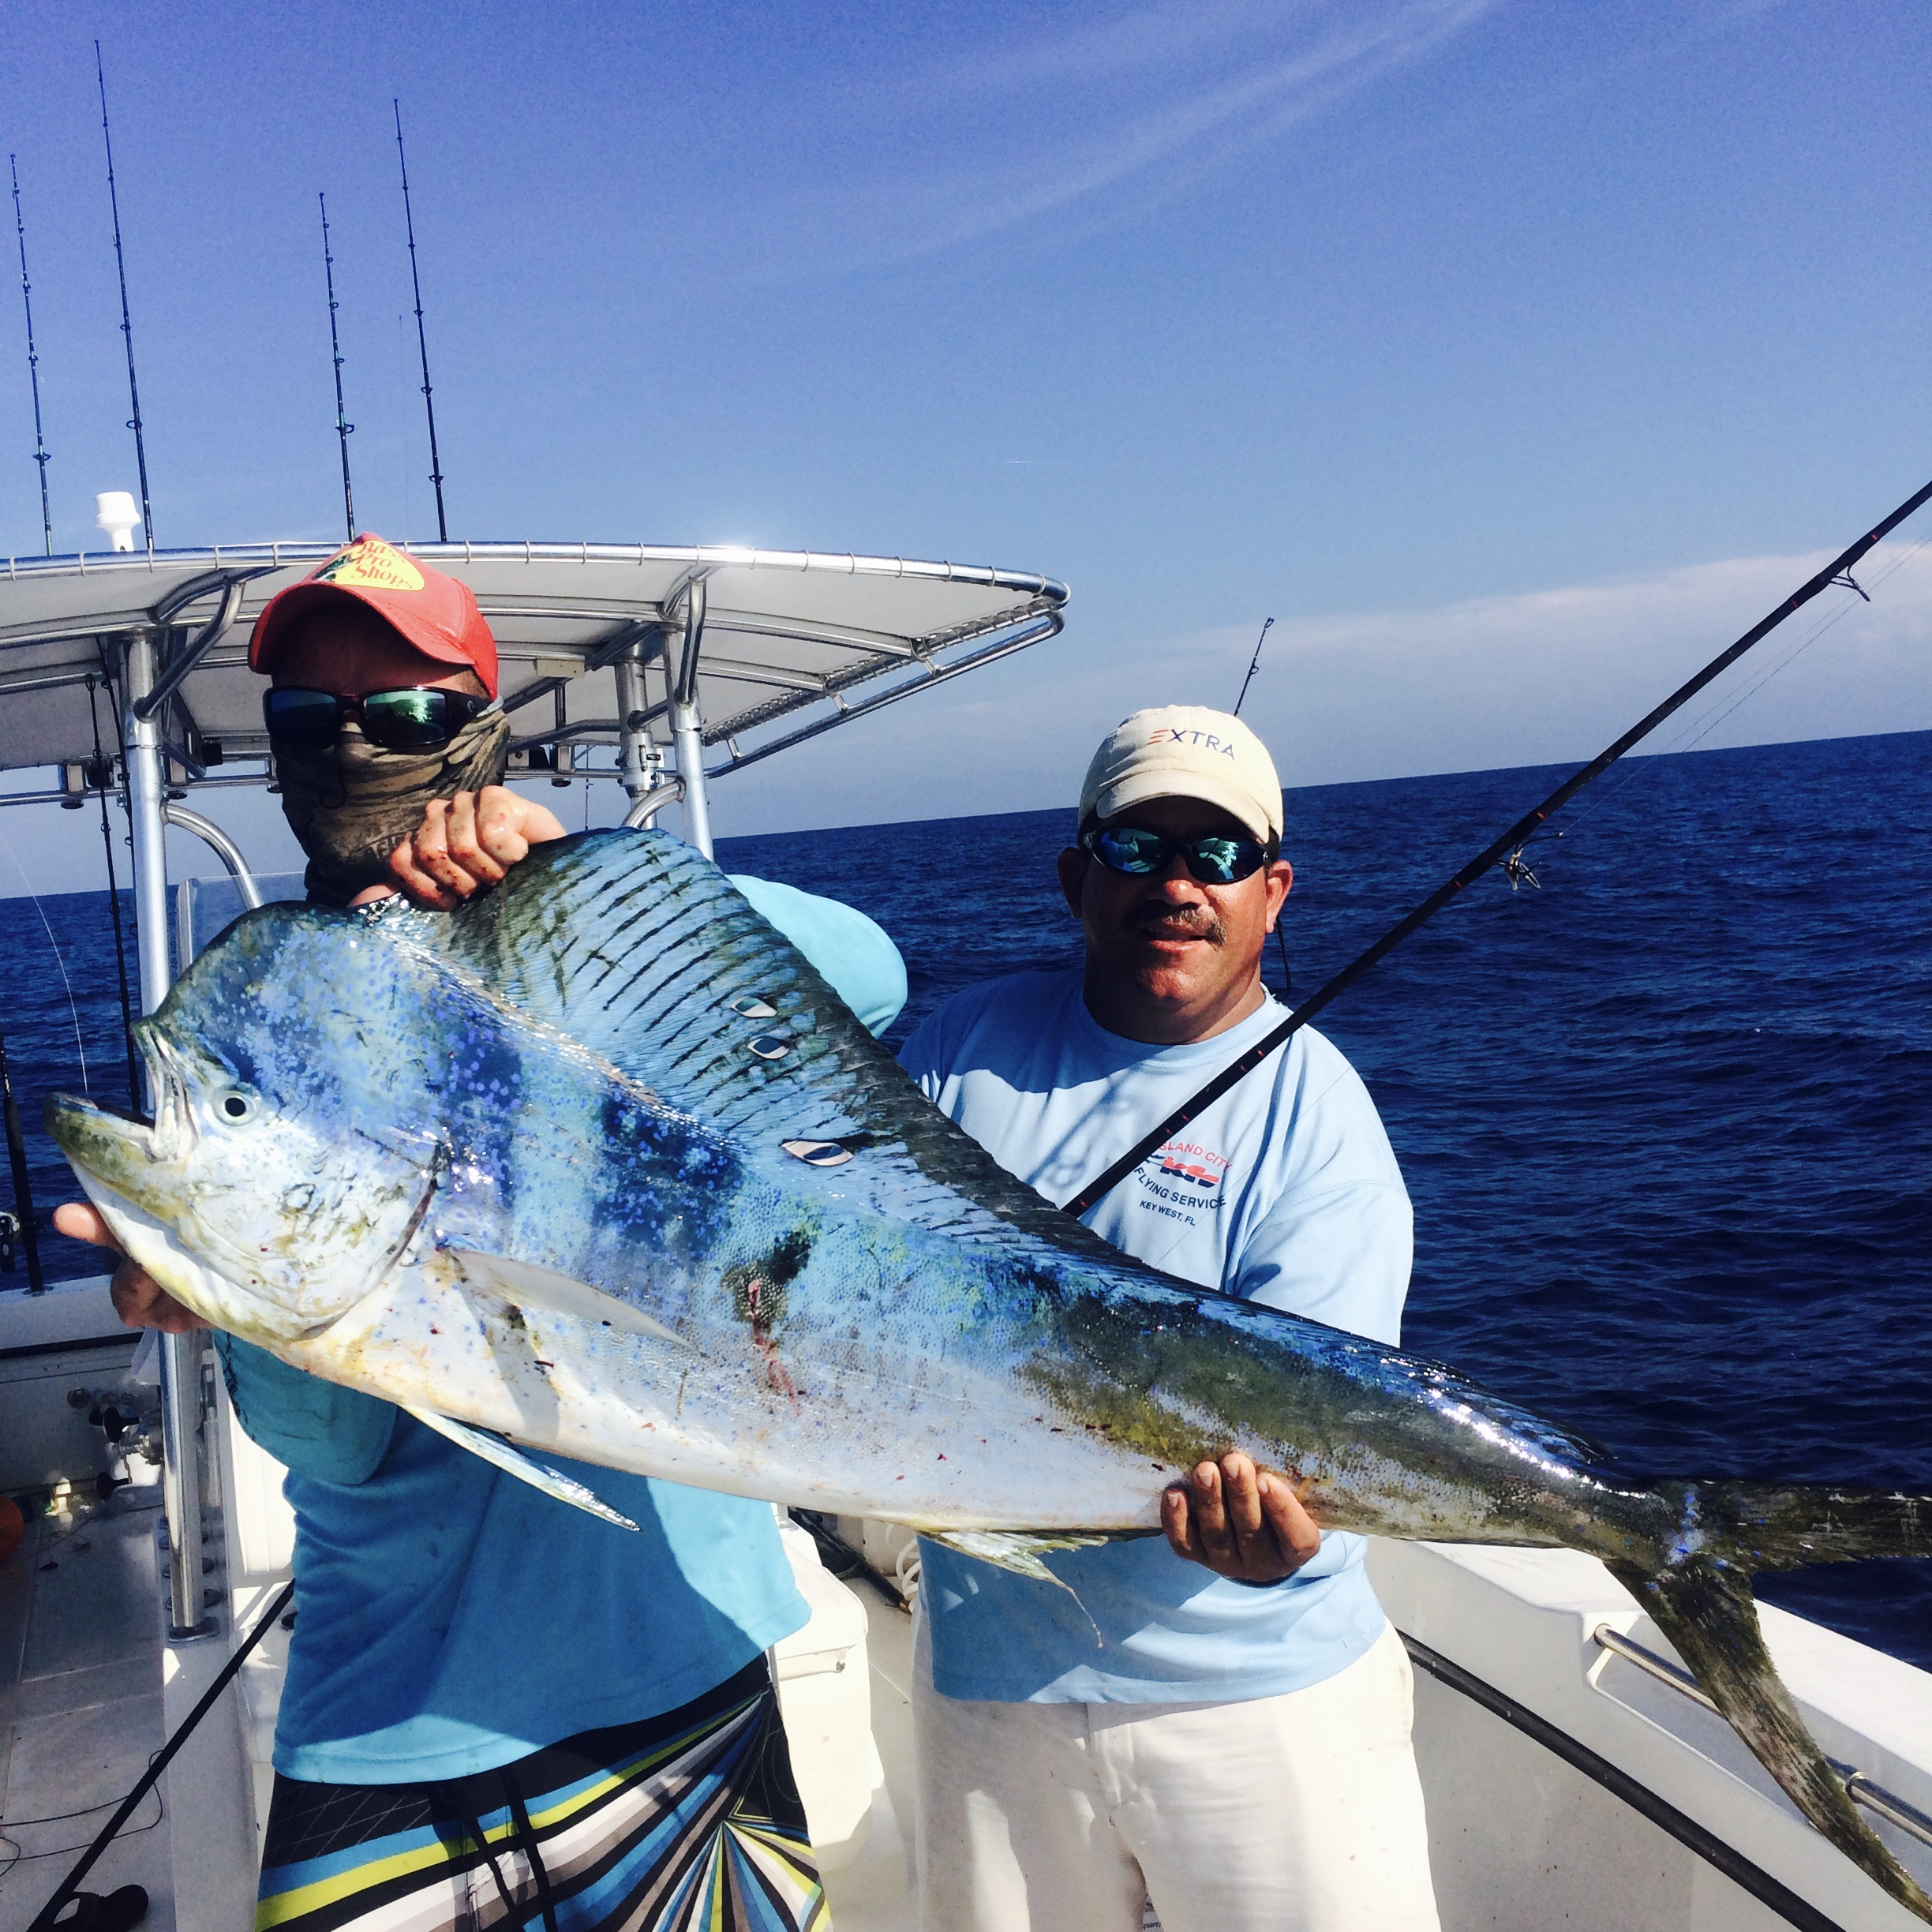 Key west offshore fishing trips far out fishing charters for Charter fishing trip